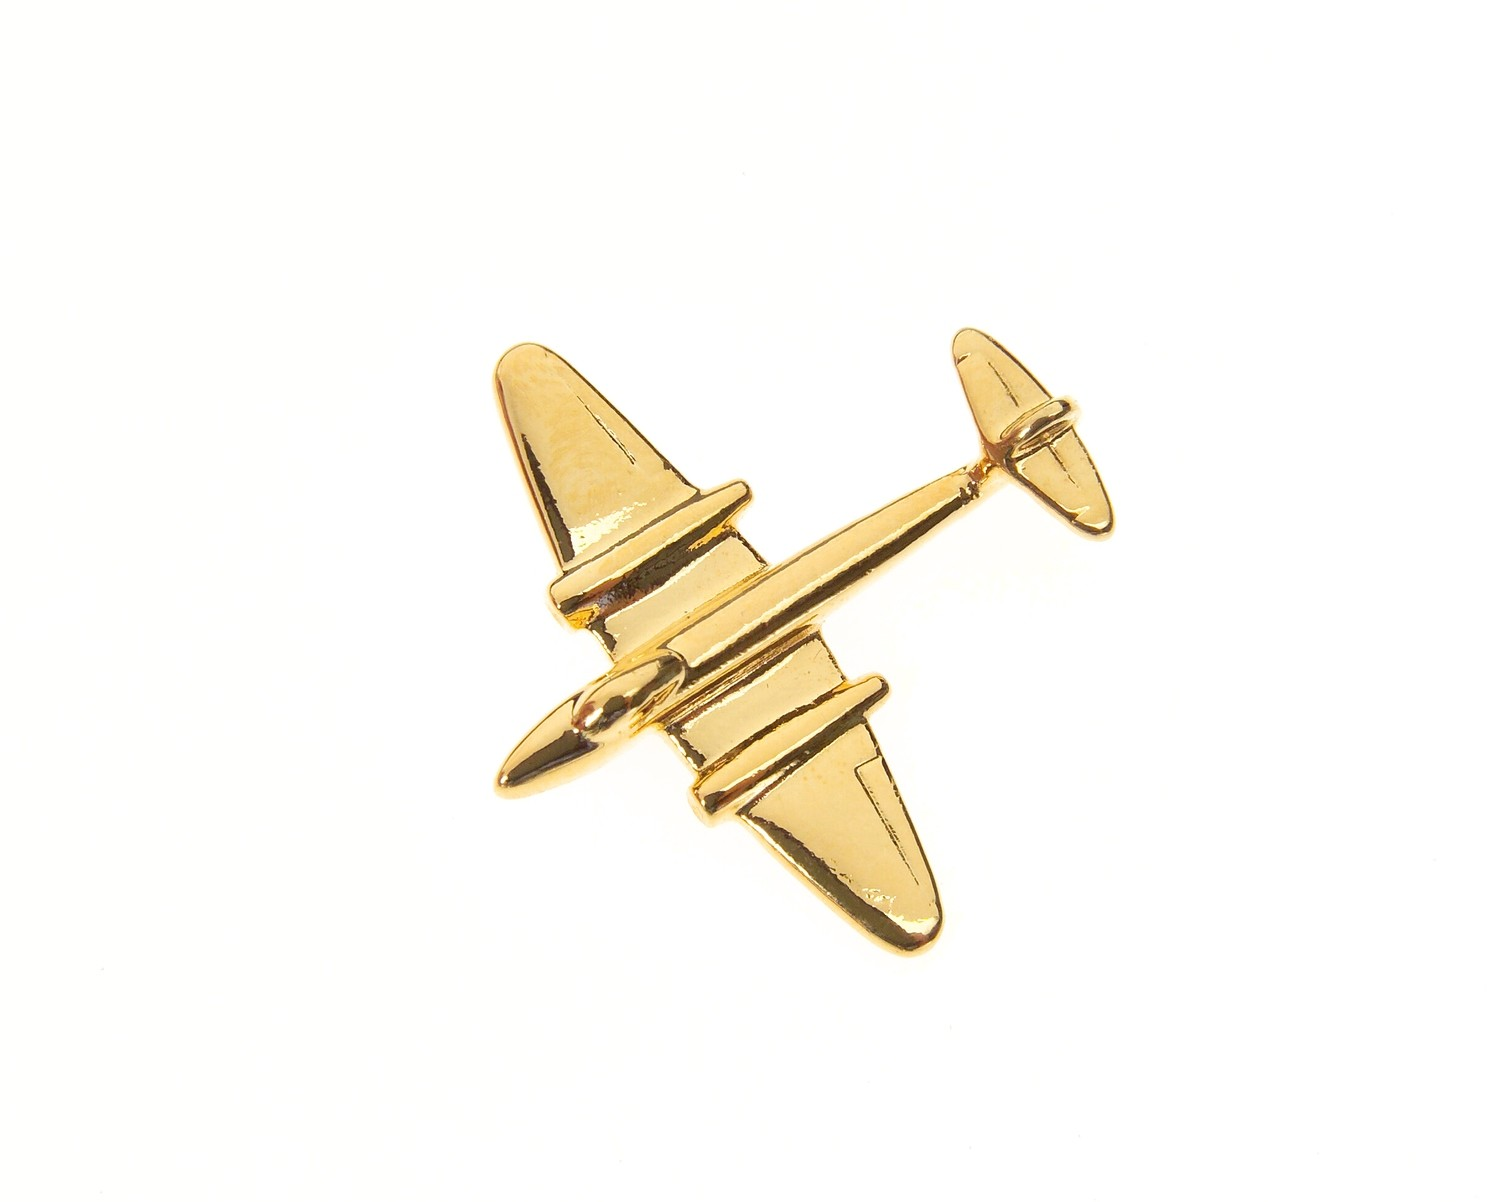 Meteor Gold Plated Tie / Lapel Pin